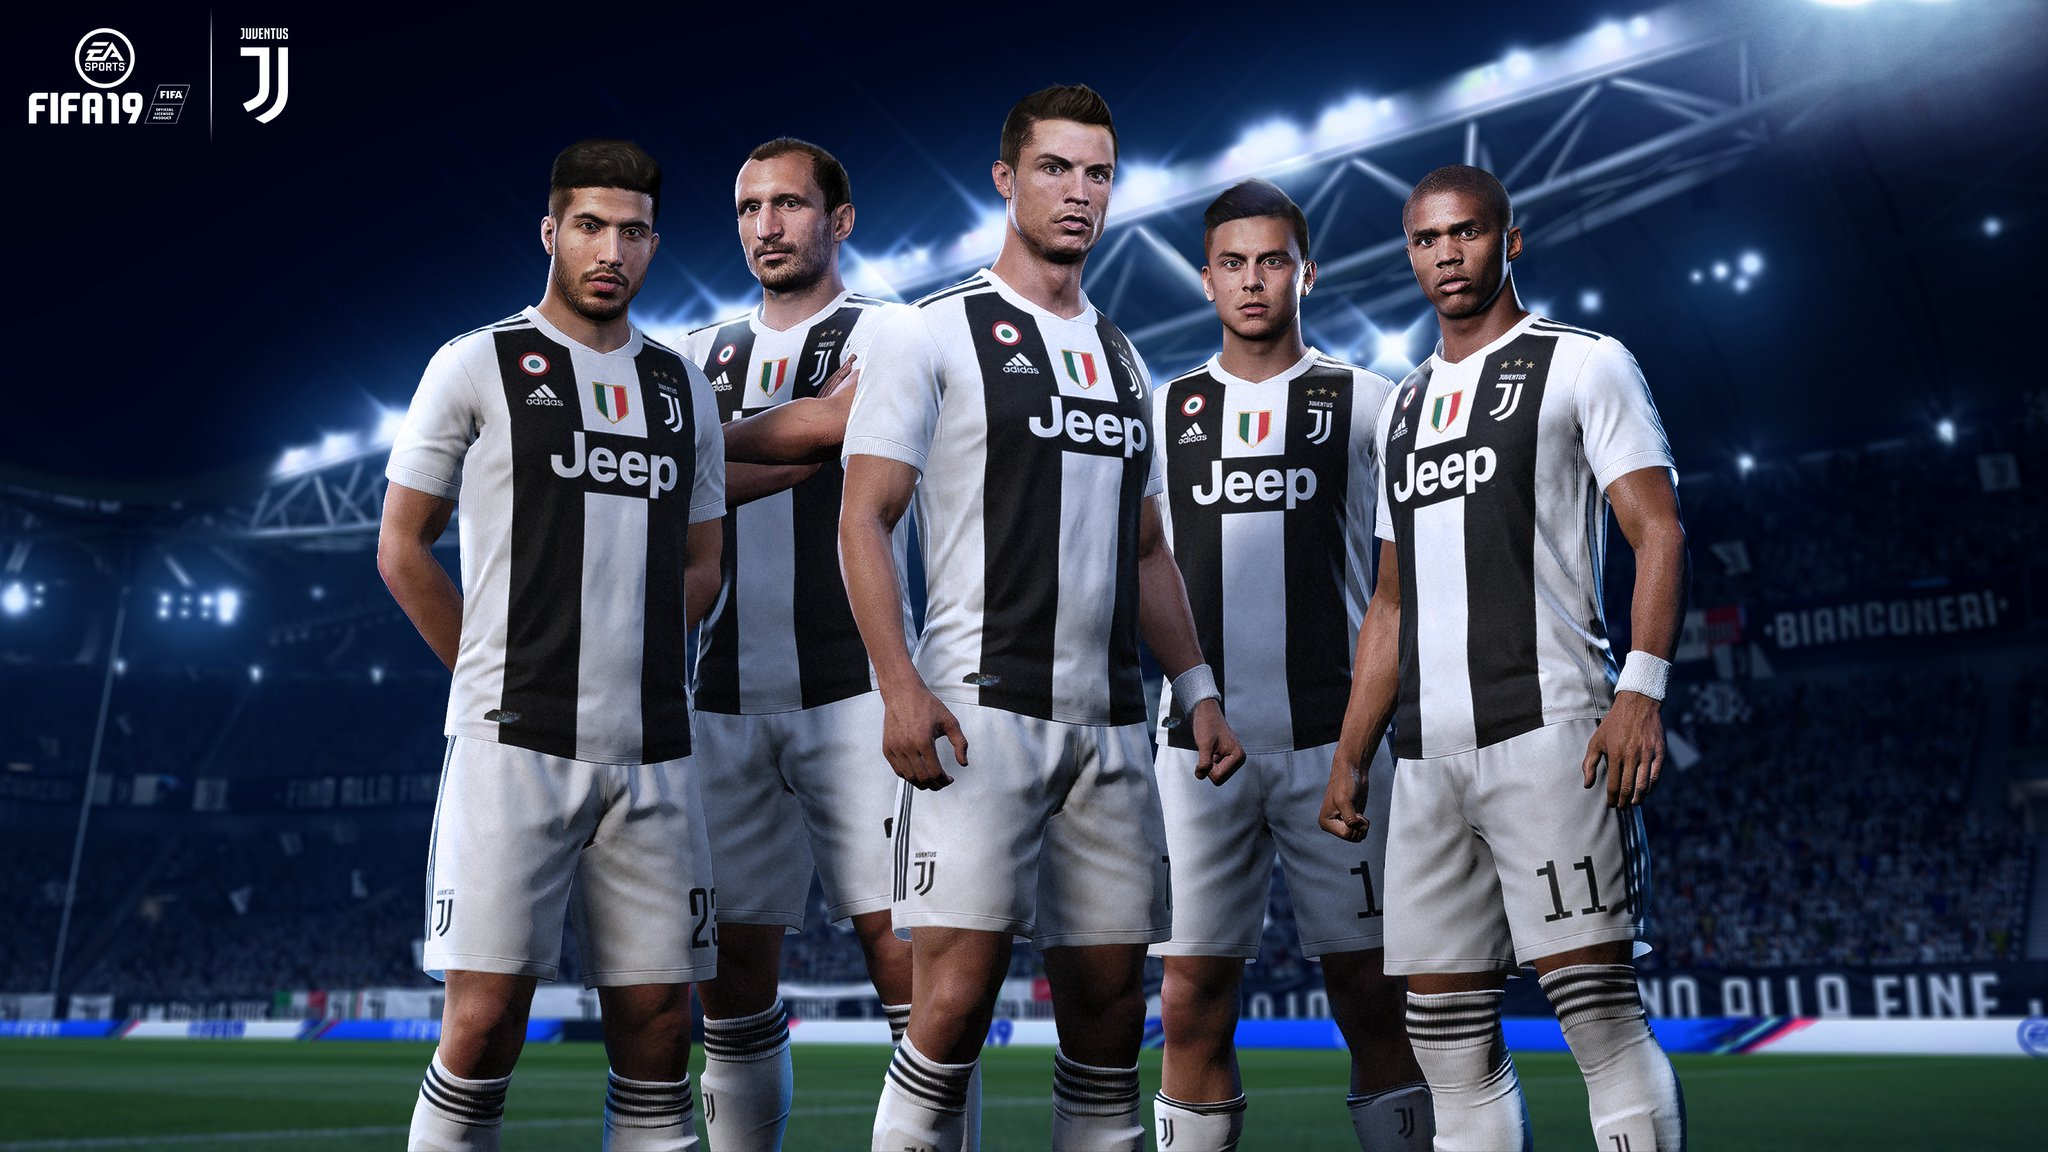 The licenses will FIFA and PES 19